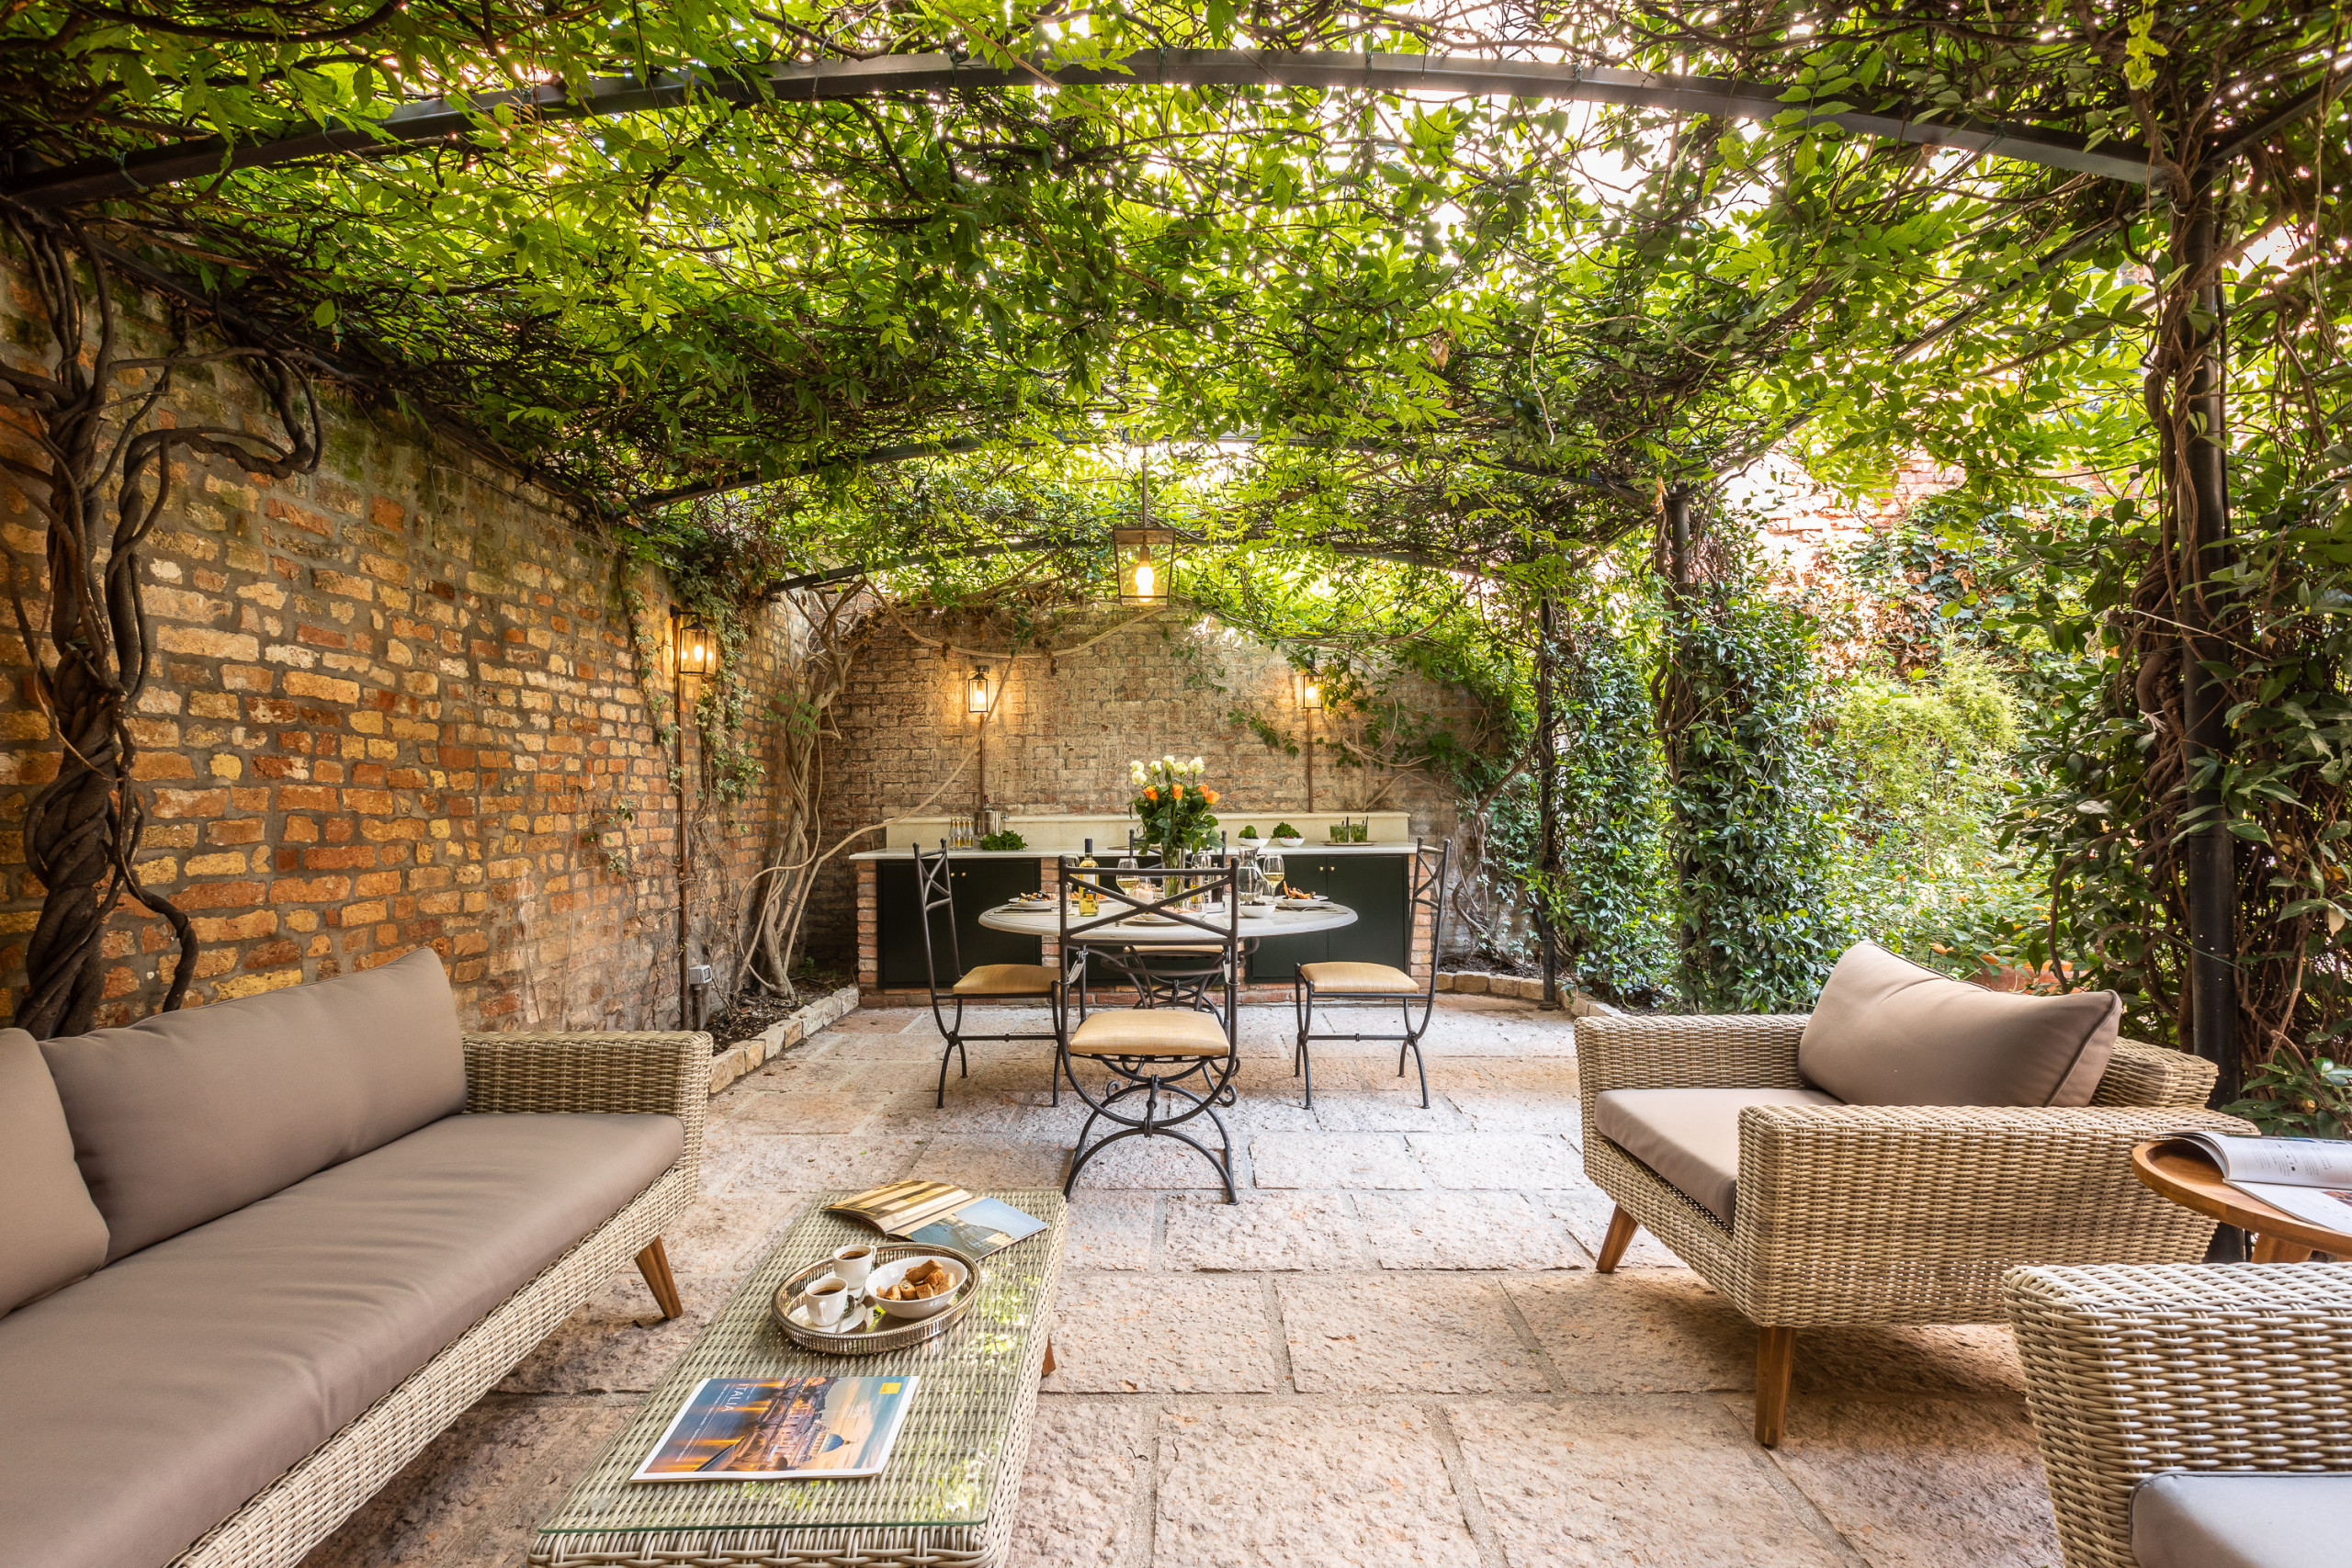 La Baruffa, Venice Apartment for rent with private garden ...